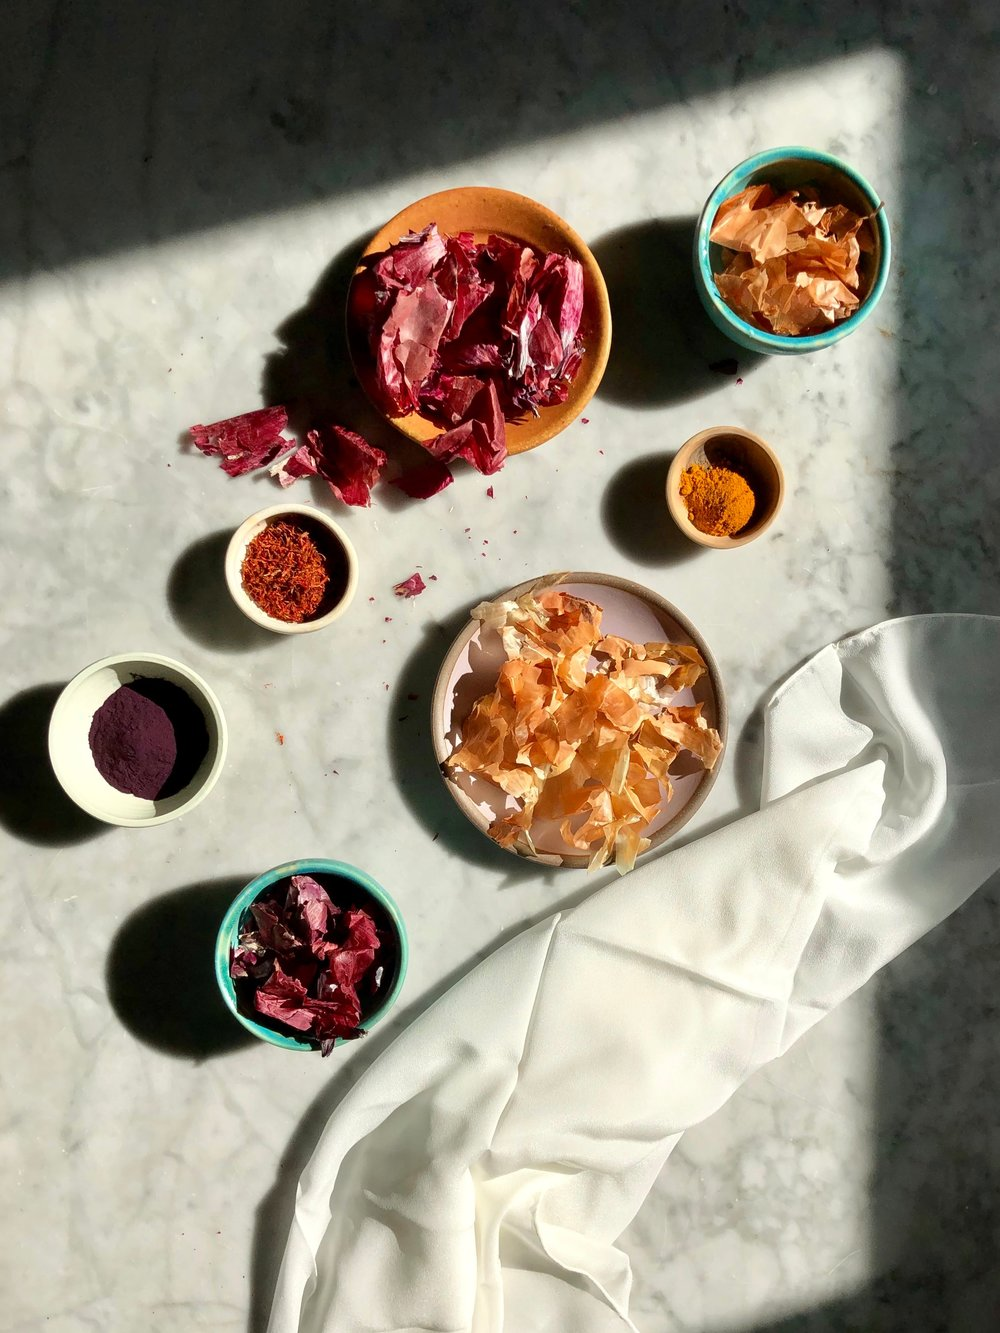 FOOD WASTE DYEING CLASS - WITH MAGGIE PATE!!